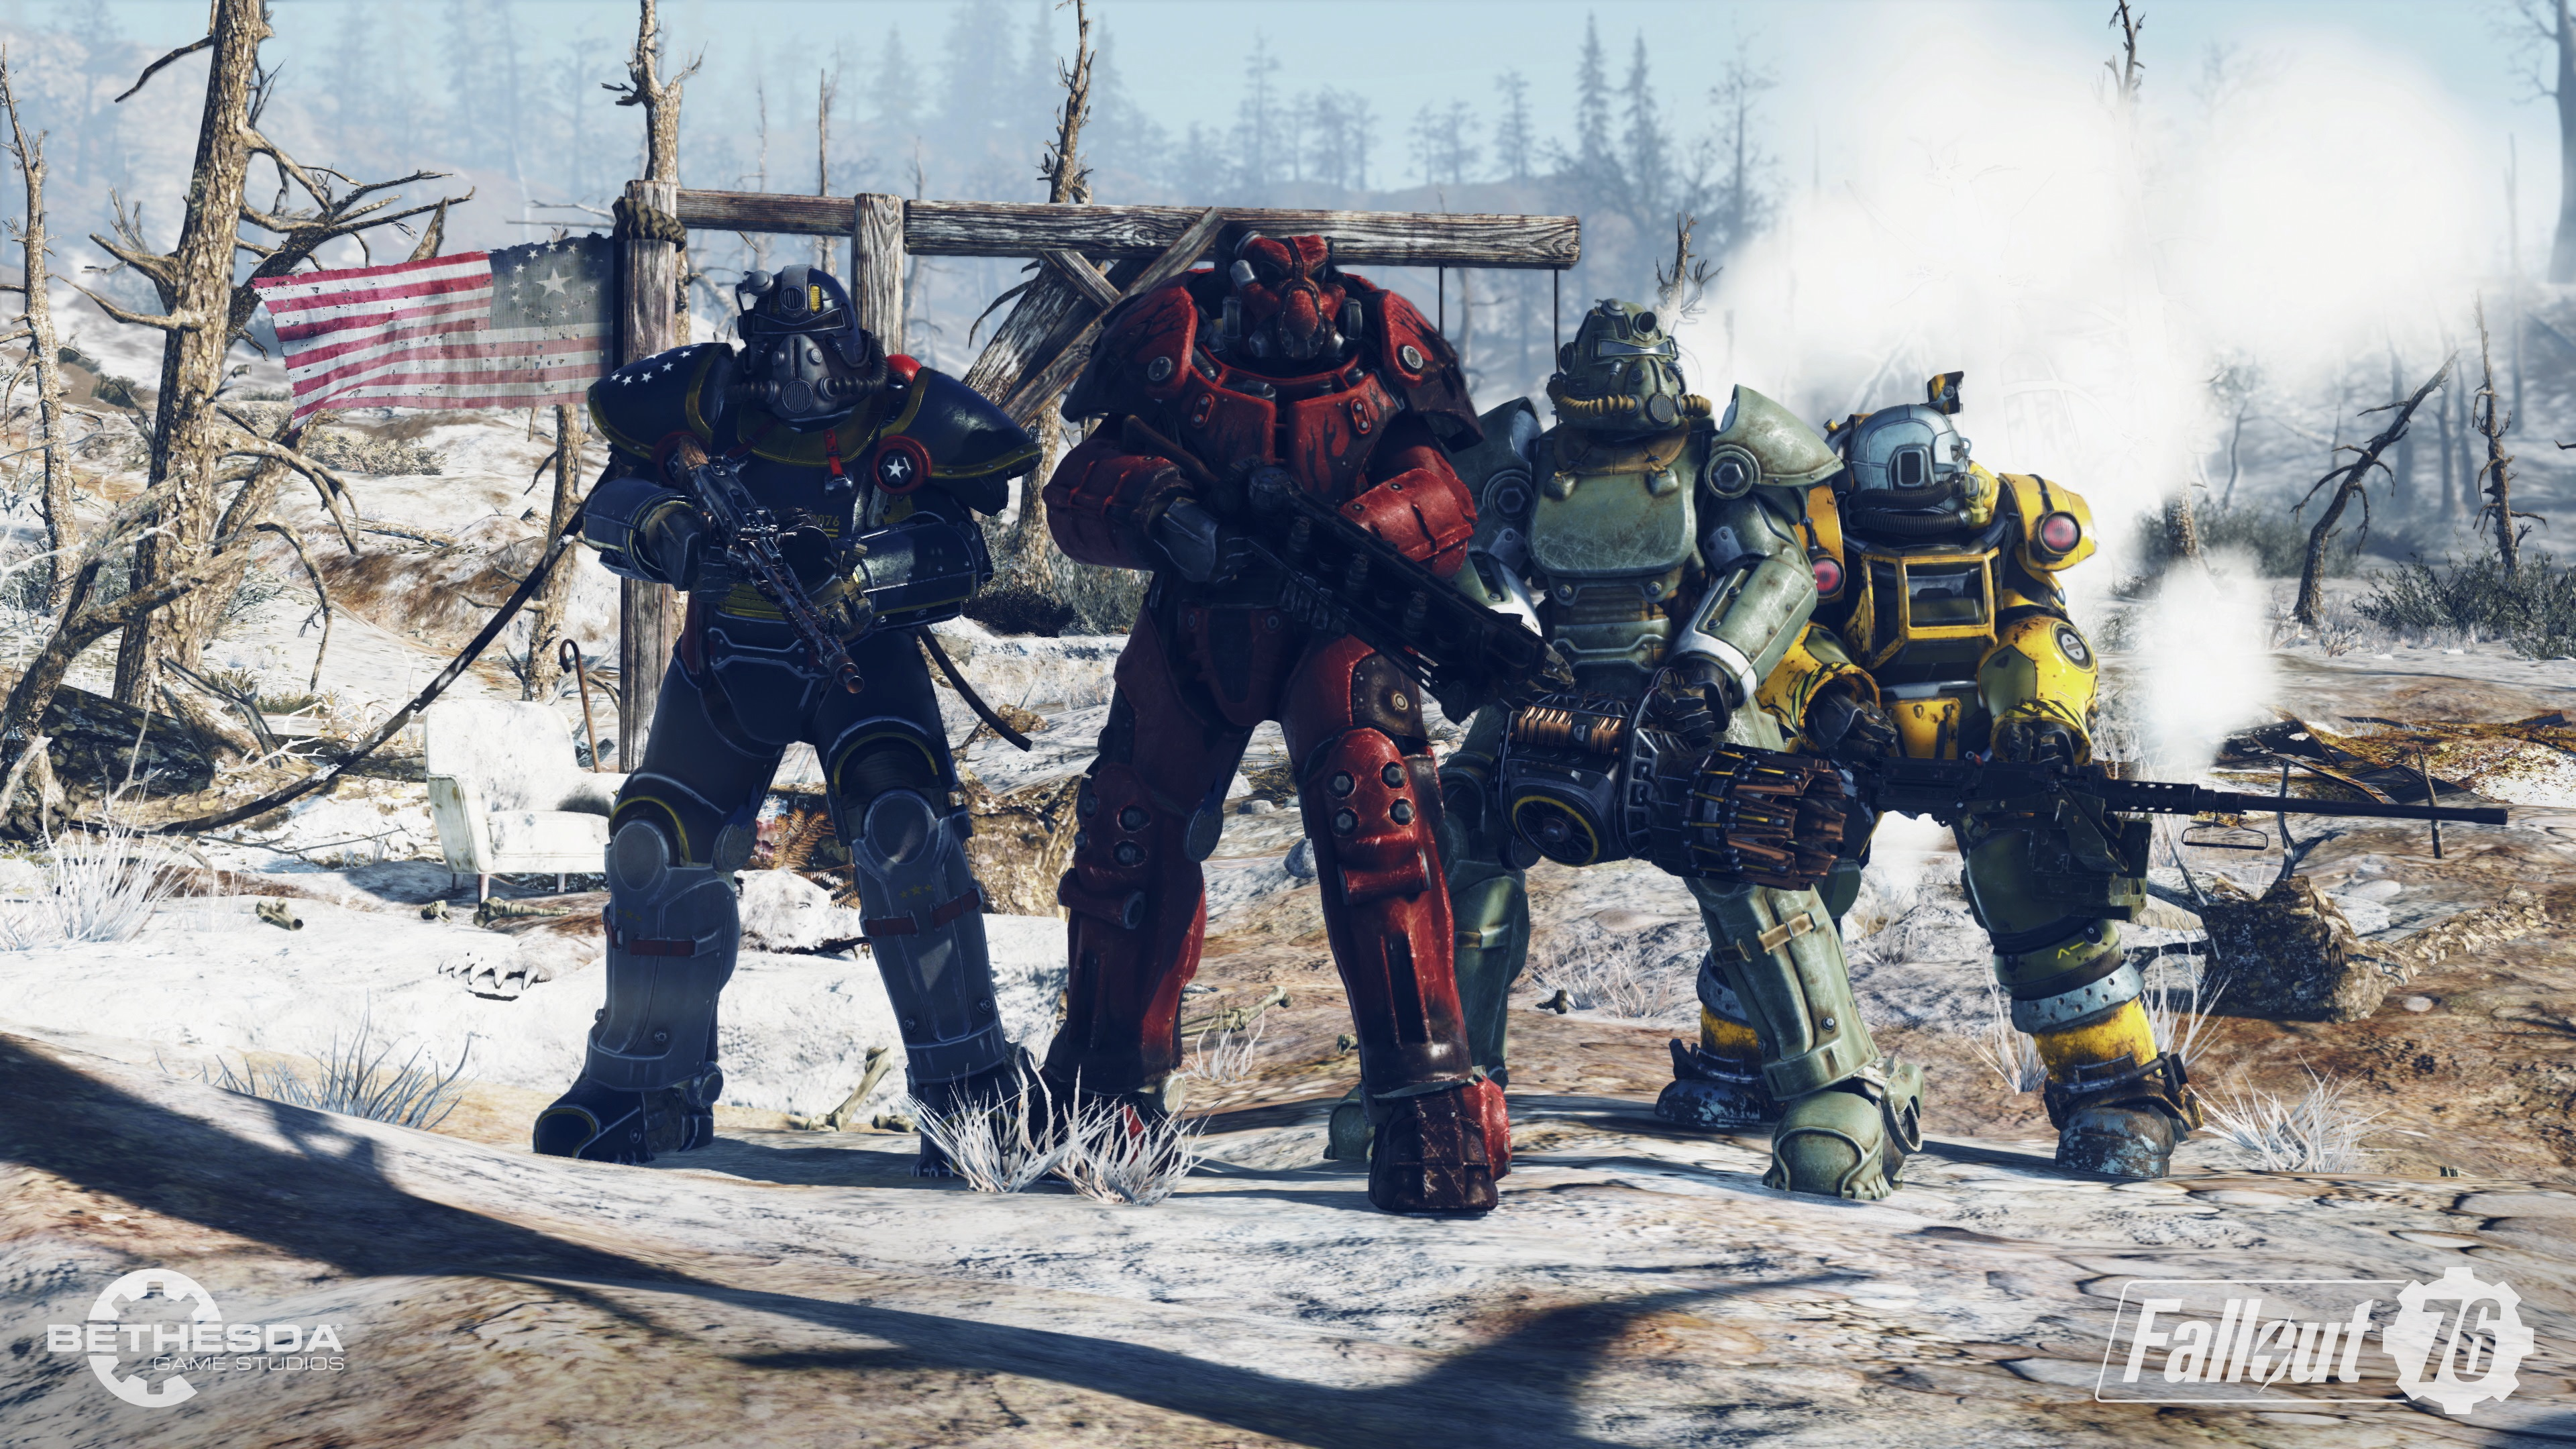 Four former Vault 76 residents in Power Armour.